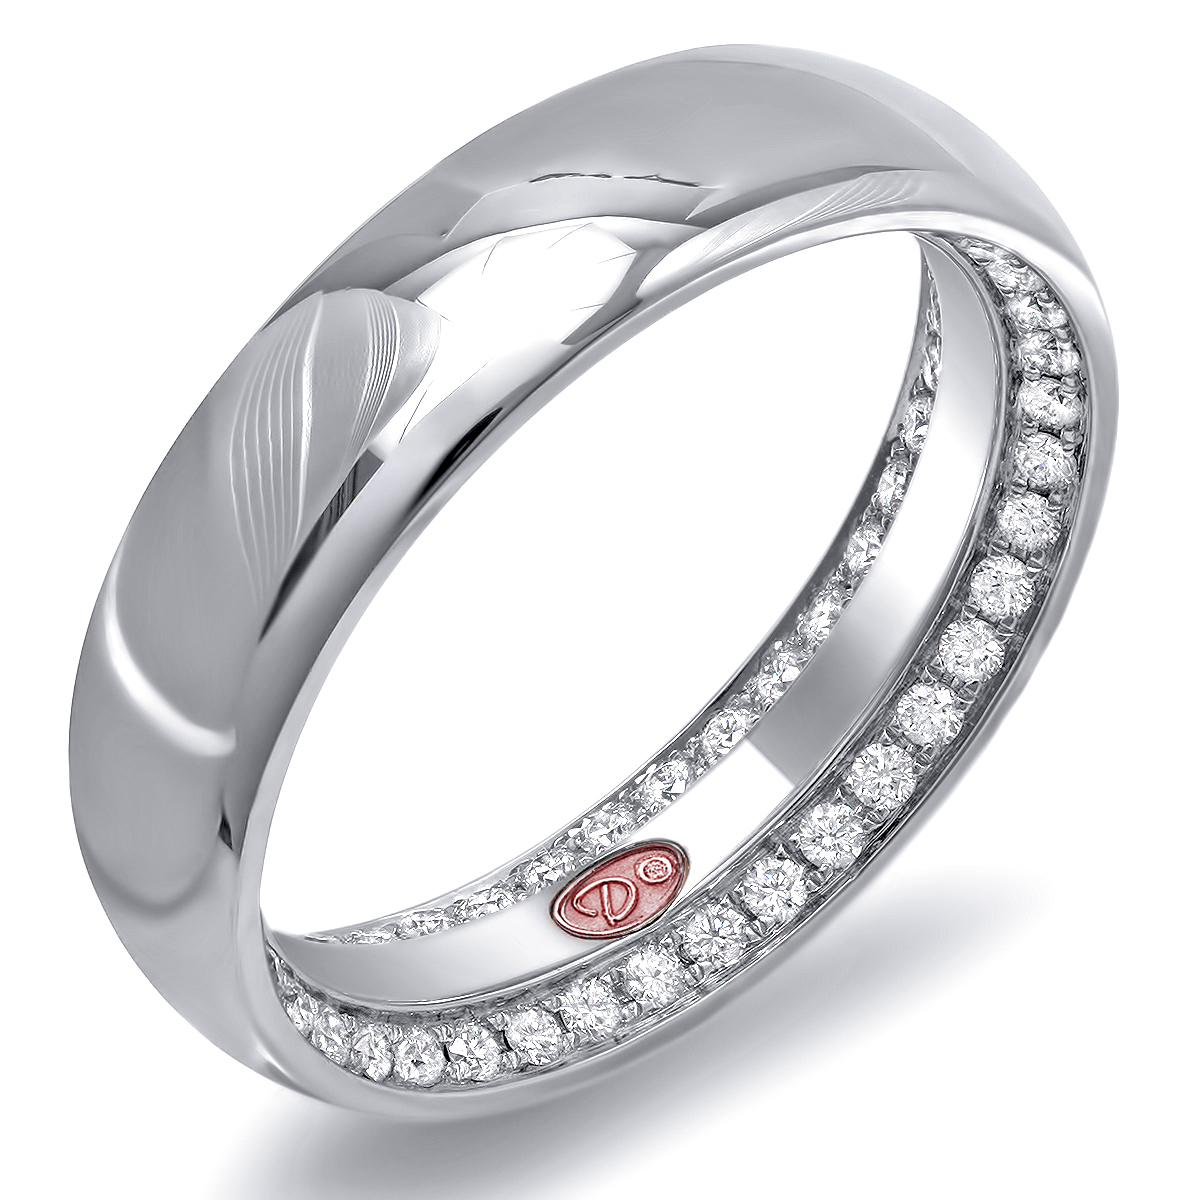 summerwind jewelers goldsmiths designer engagement jewelry and rings demarco bridal jewelry - Designer Wedding Rings